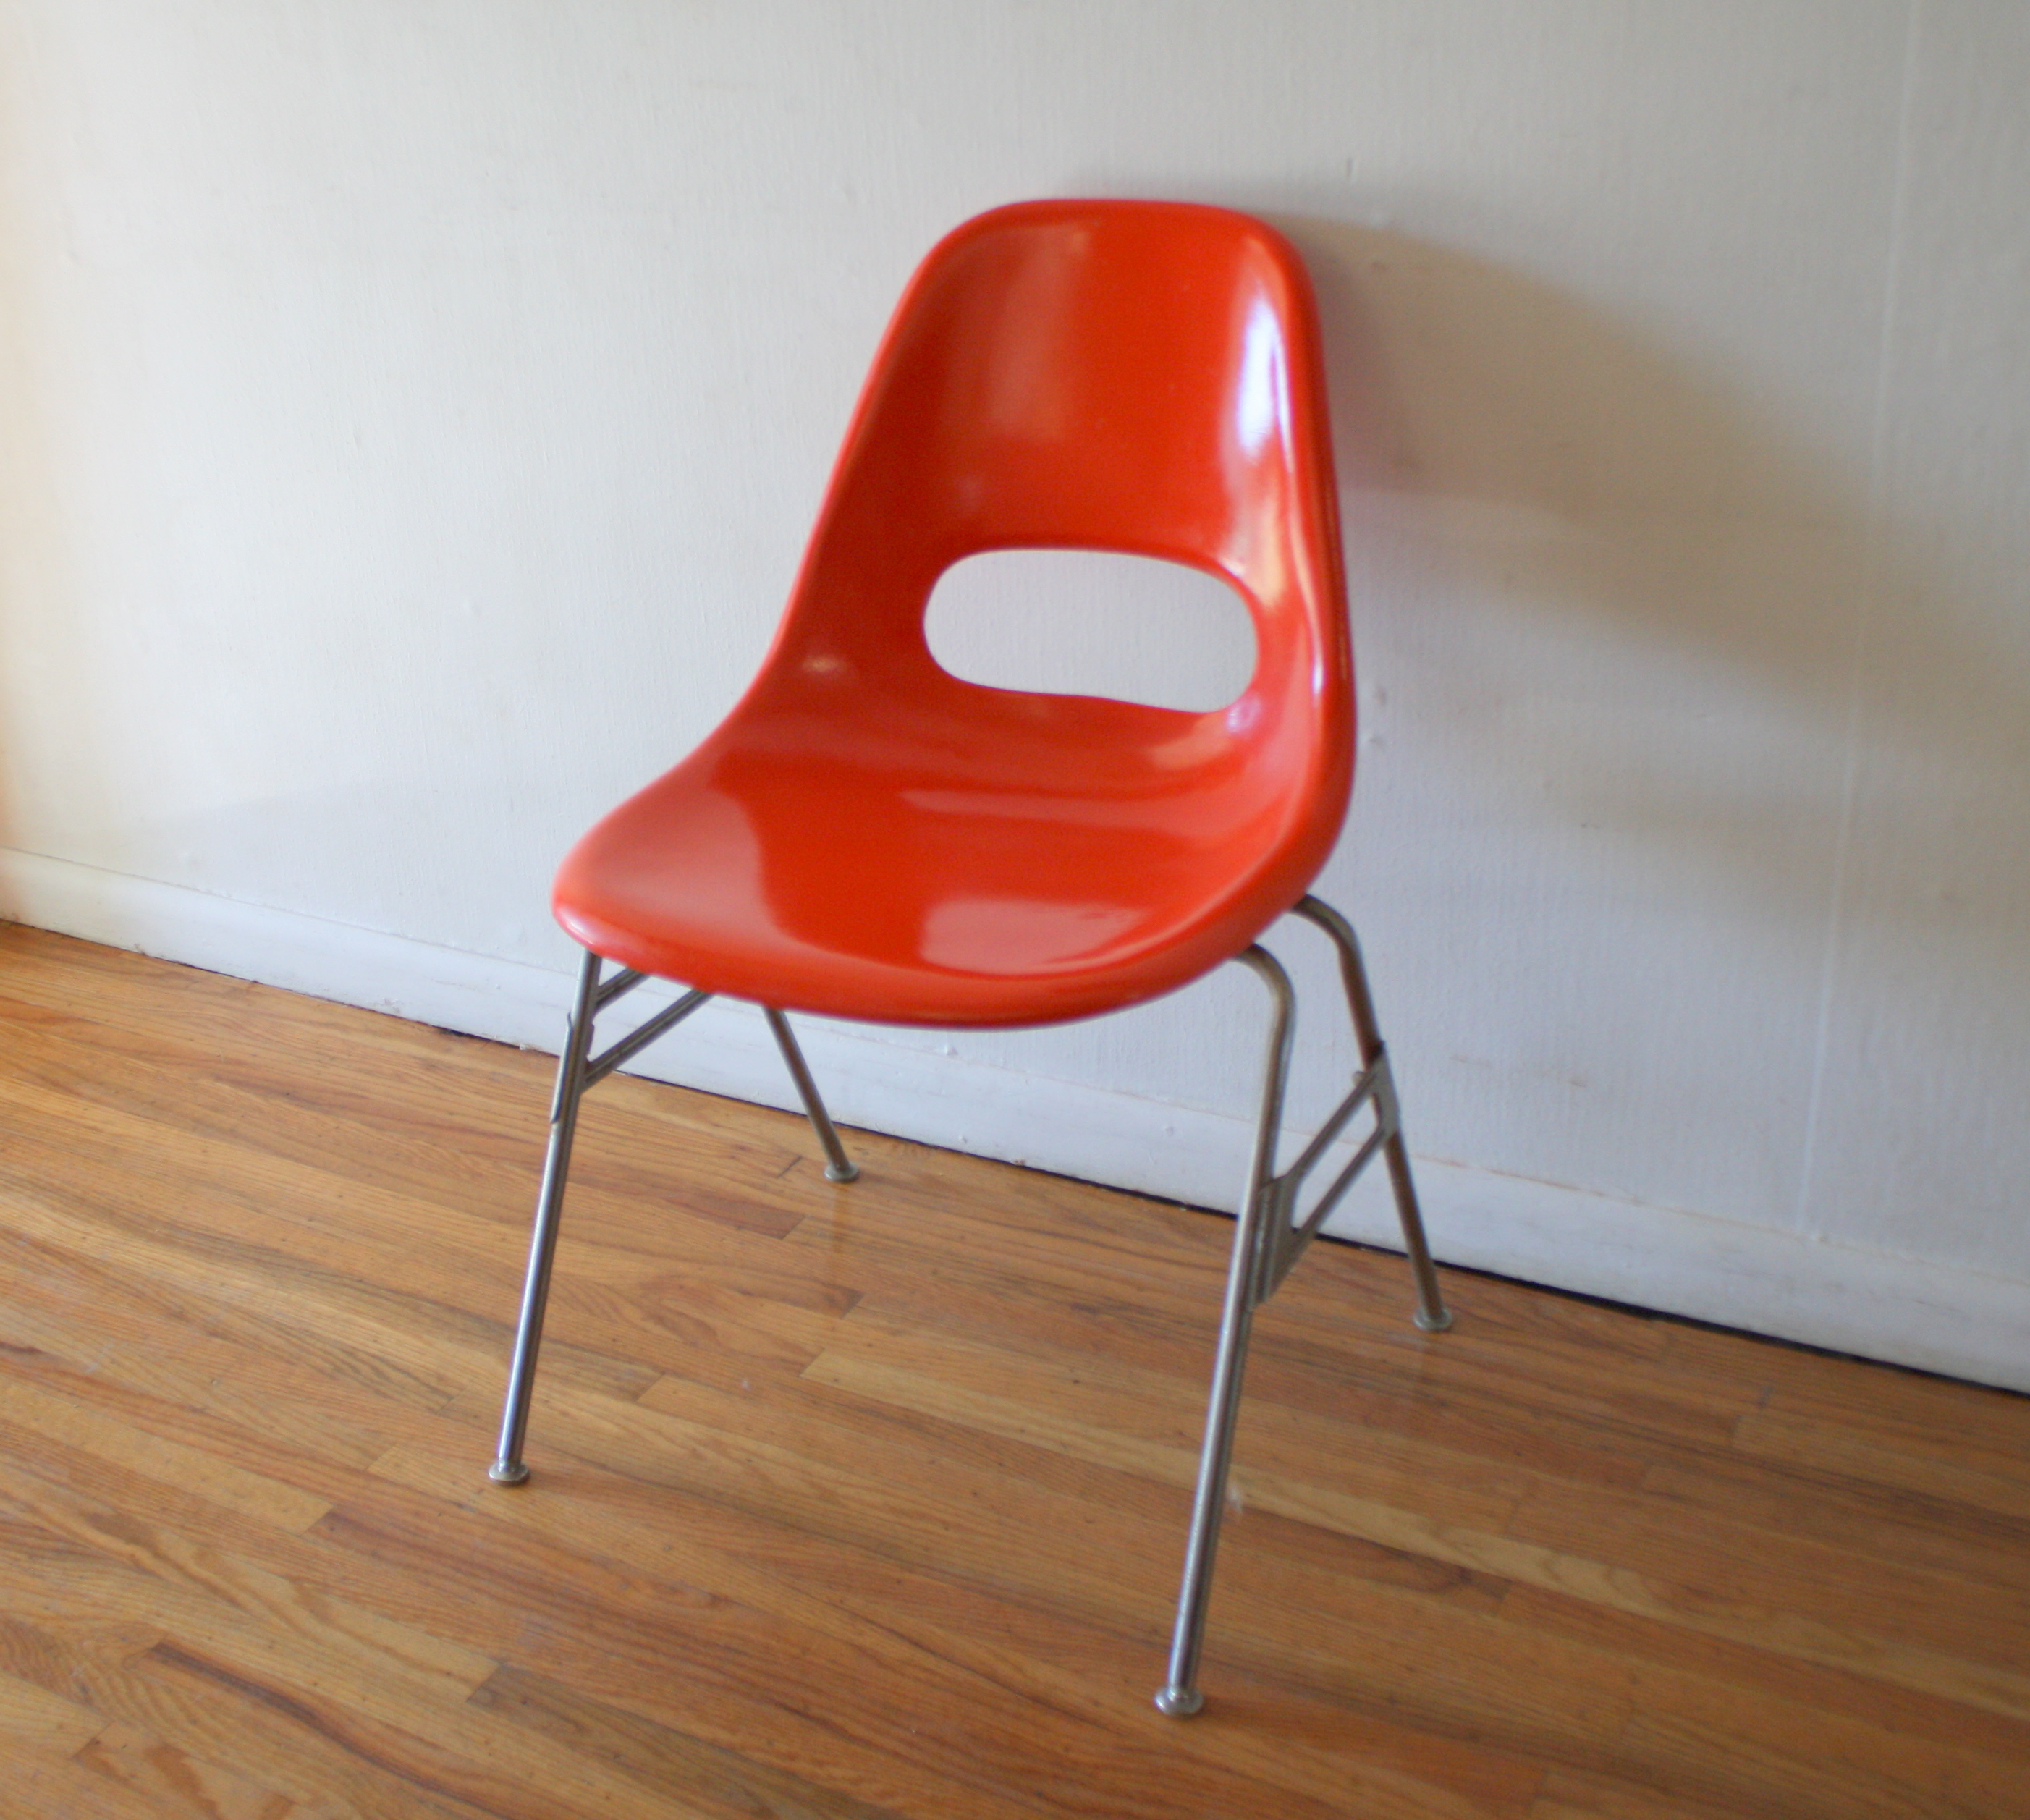 kreuger red fiberglass chair 1